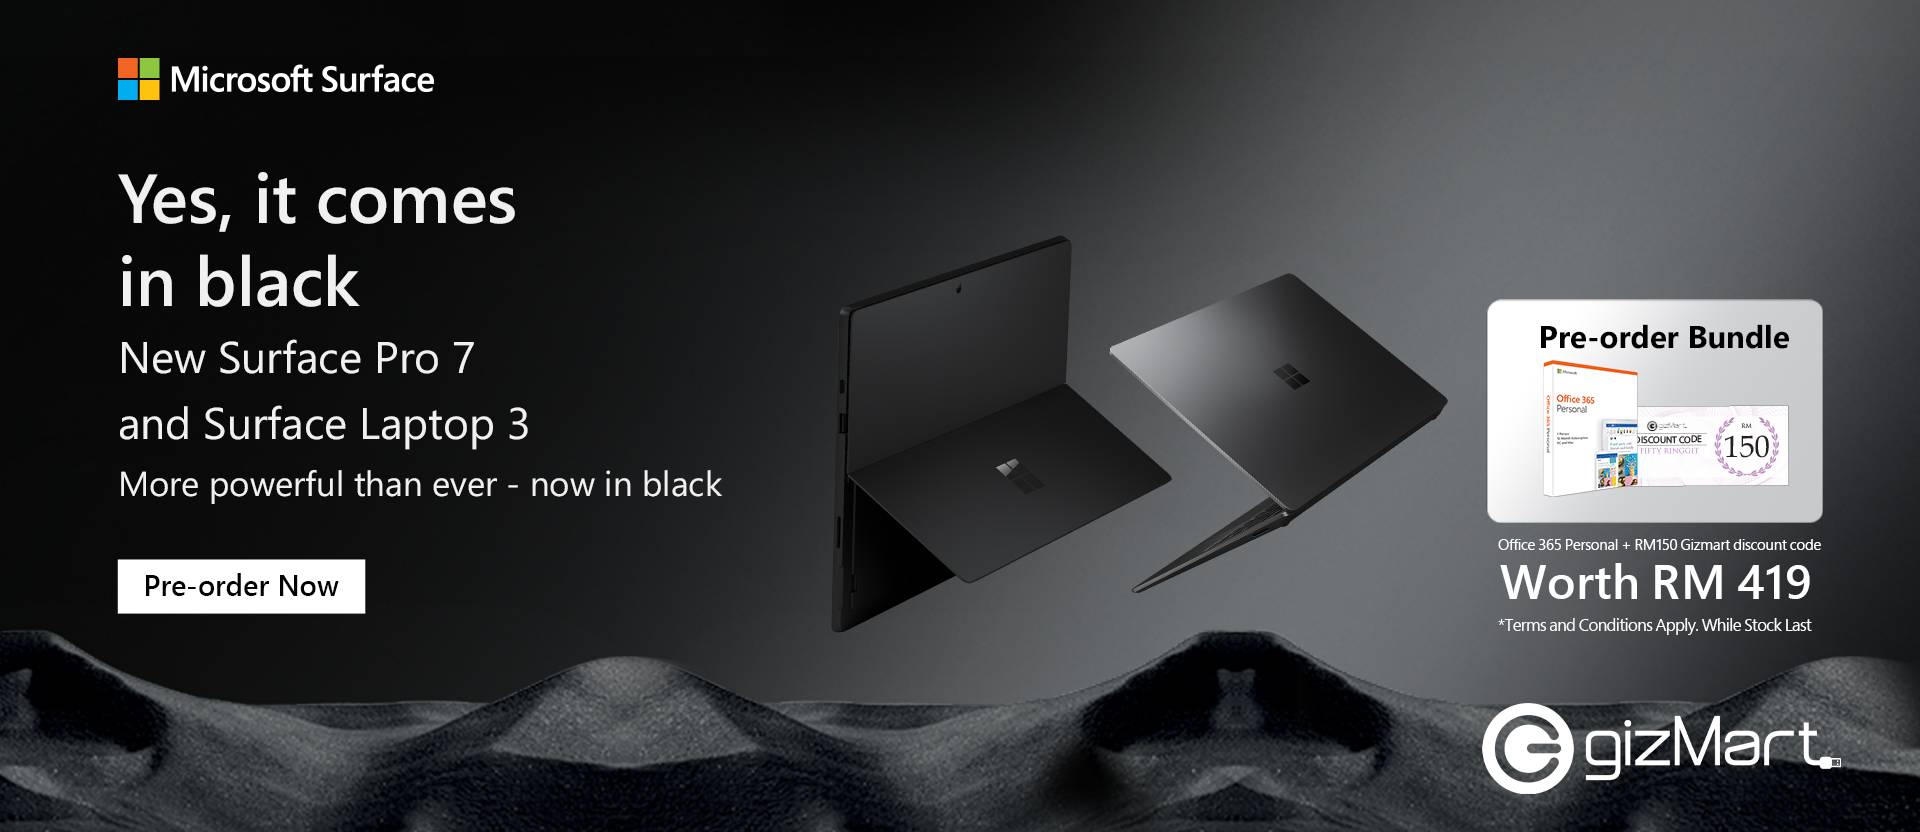 Surface Pro 7 & Surface Laptop 3 Pre-Order